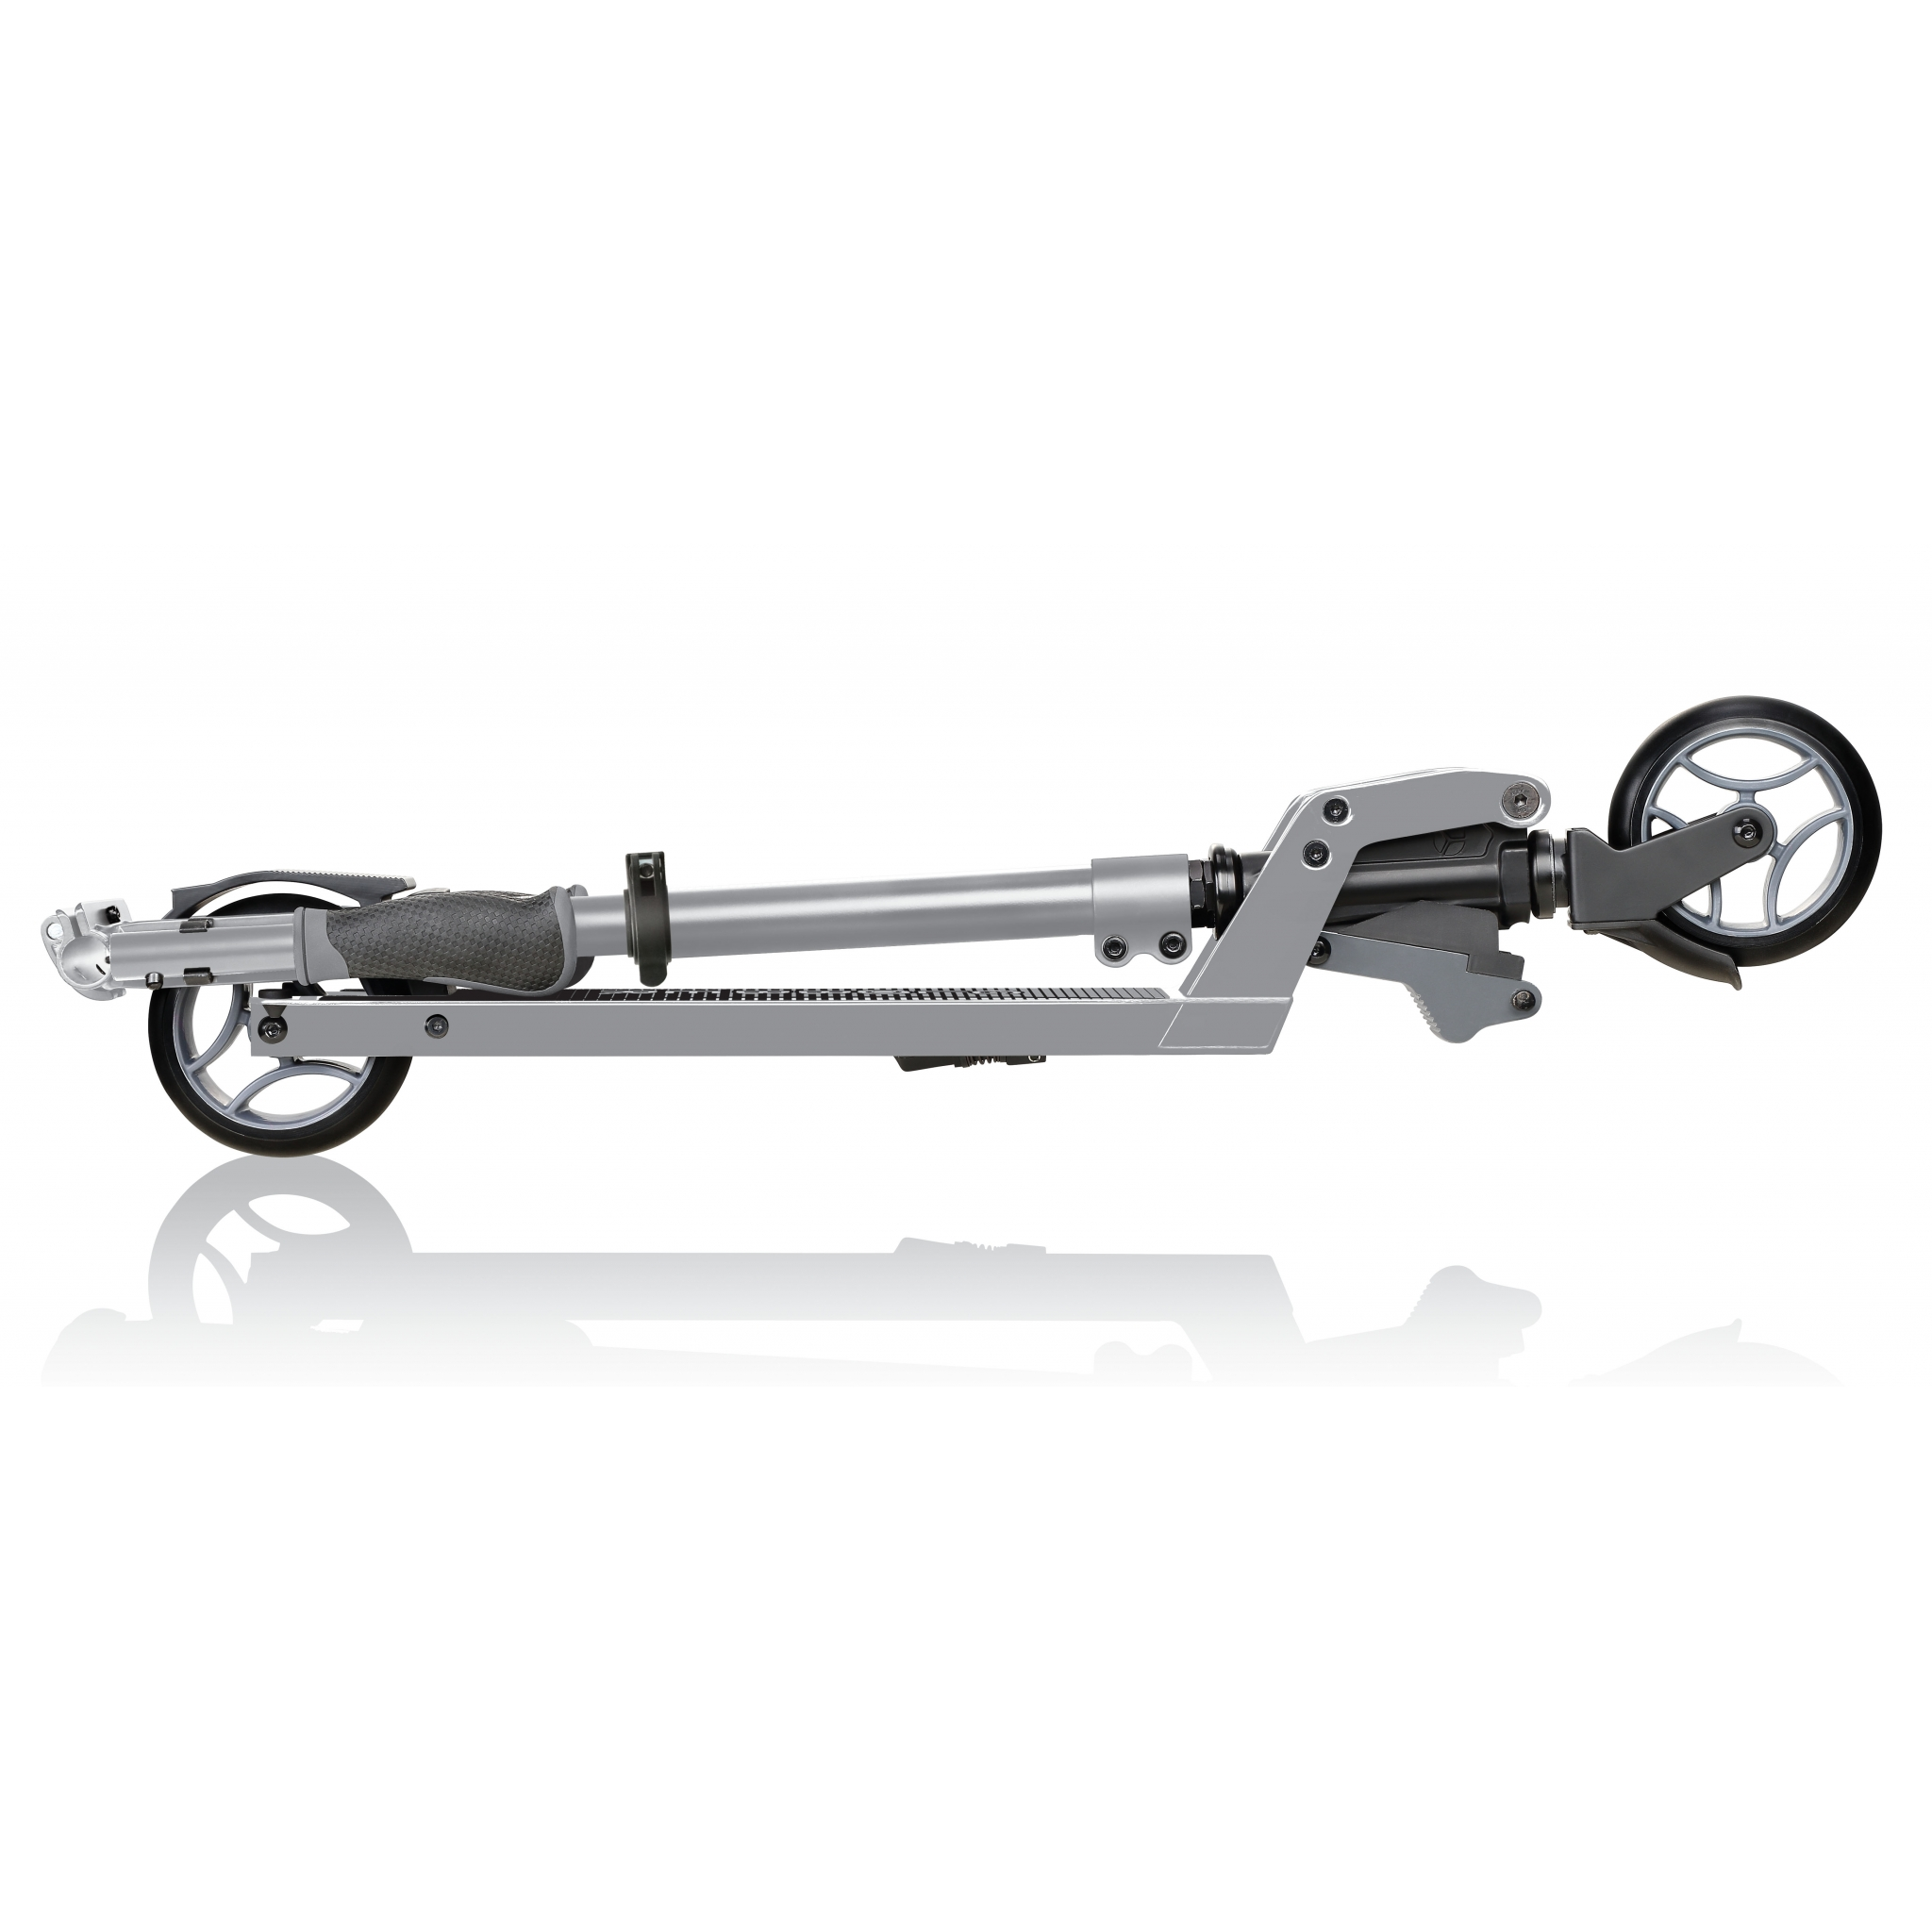 ONE-K-125-2-wheel-teen-scooter-foldable-scooter-and-handlebars_silver 3